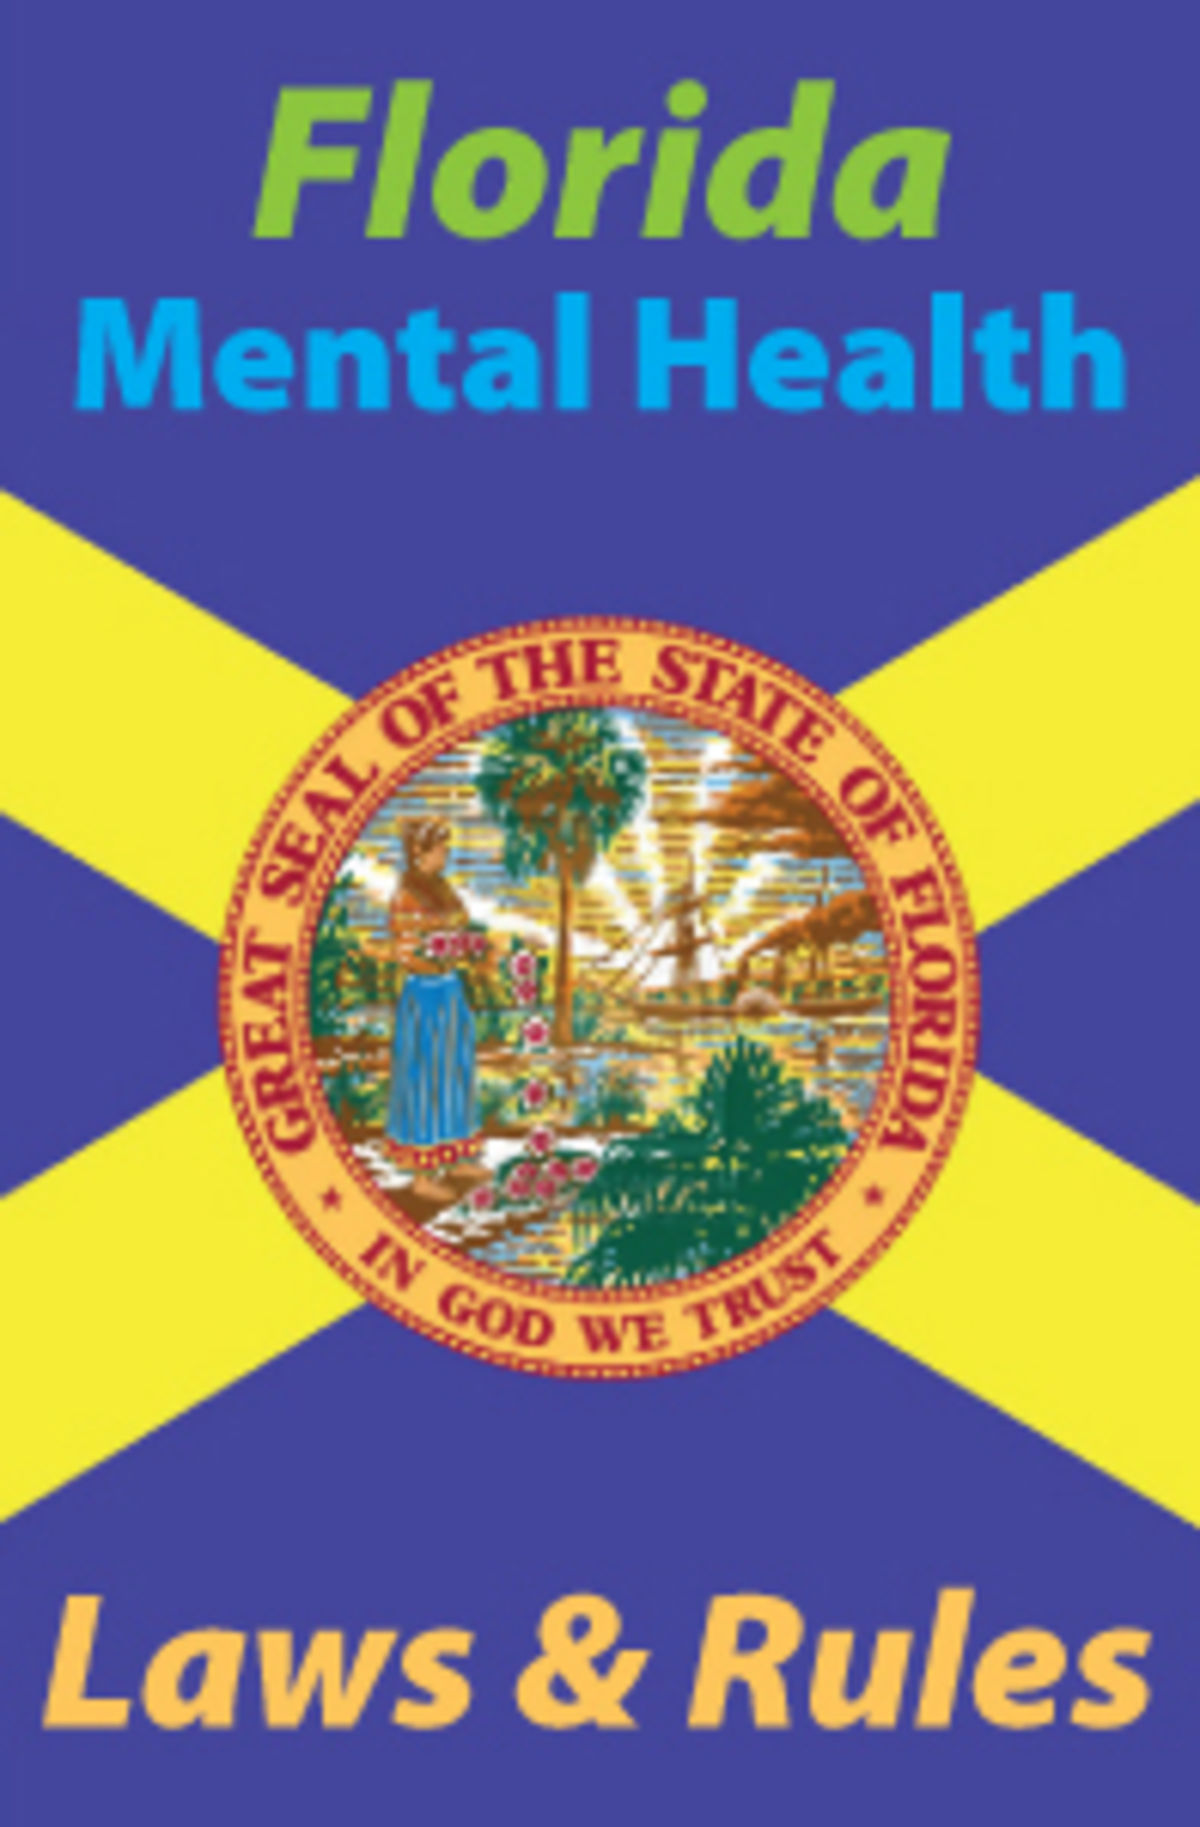 Headline for Florida Mental Health Laws and Rules Course